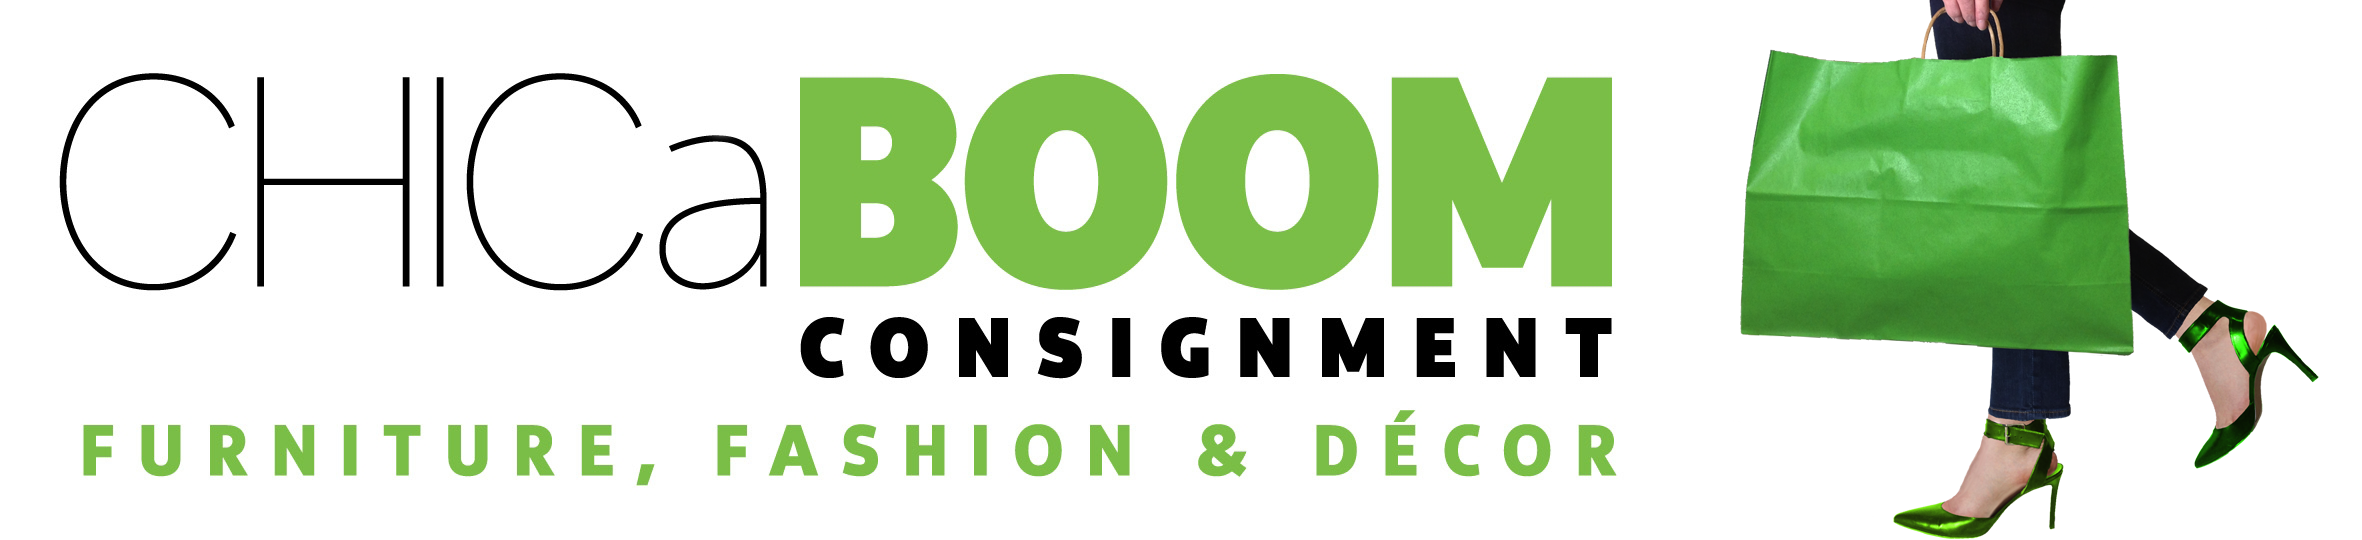 ChicaBoom Consignment Caledon